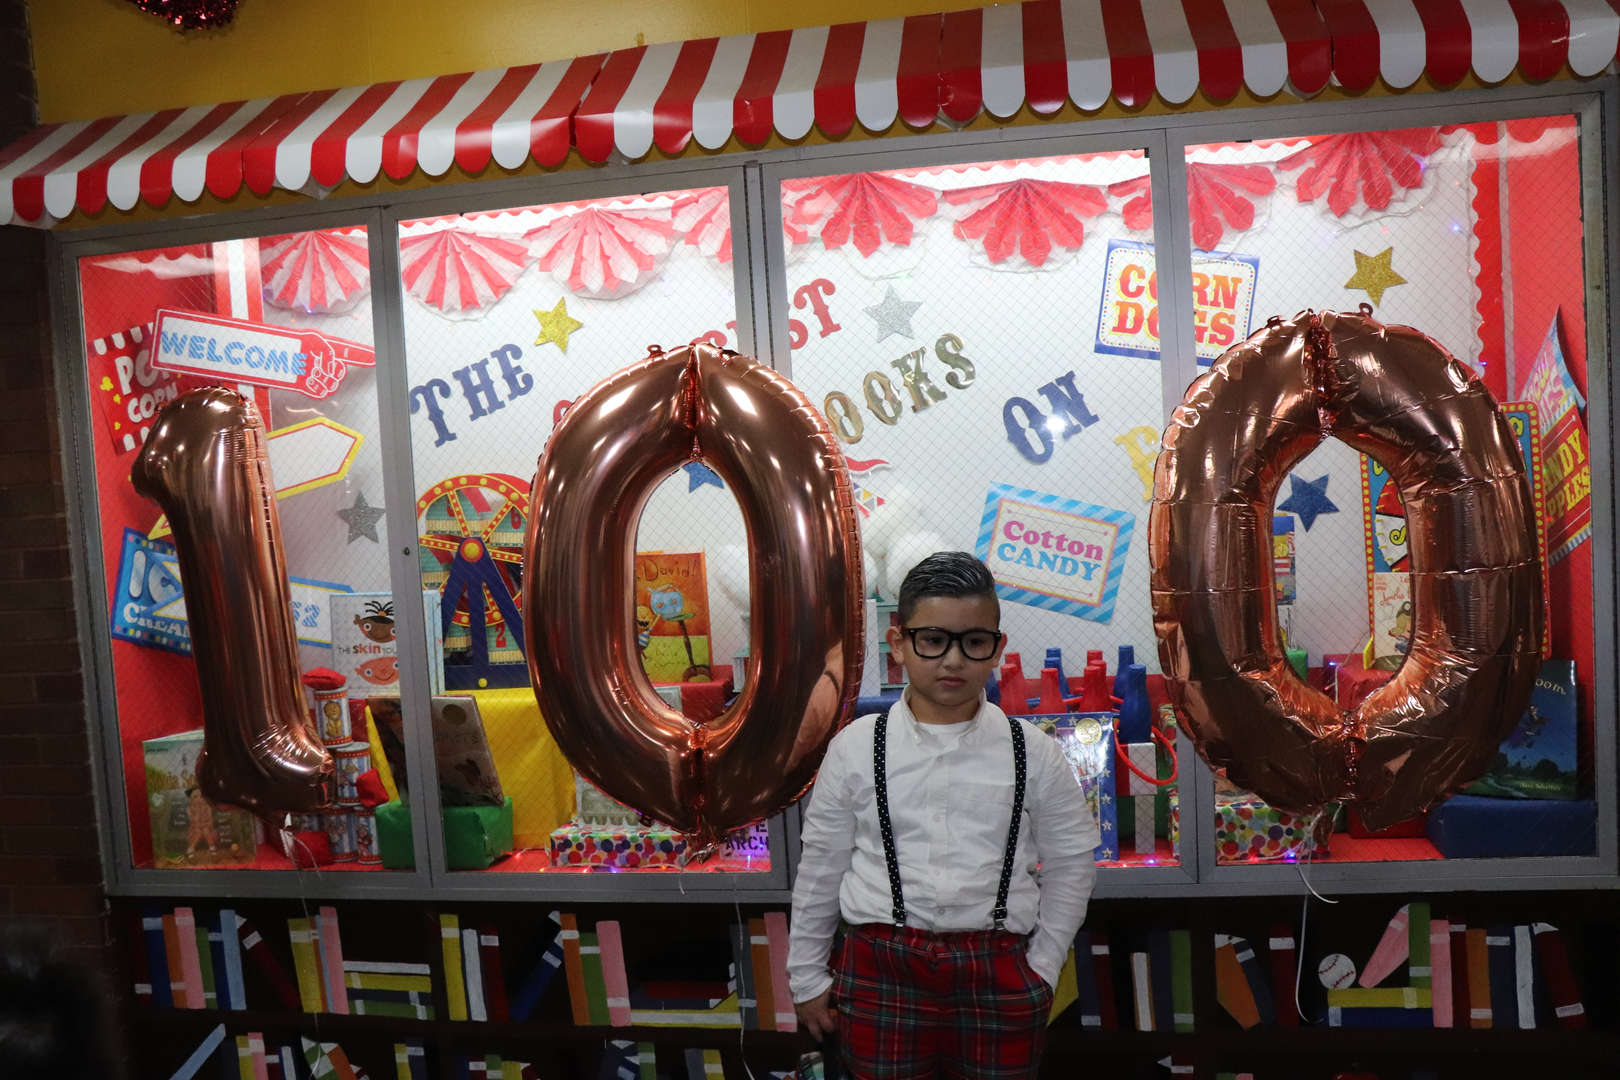 A student dressed like he is 100 in front of the number 100 balloons.